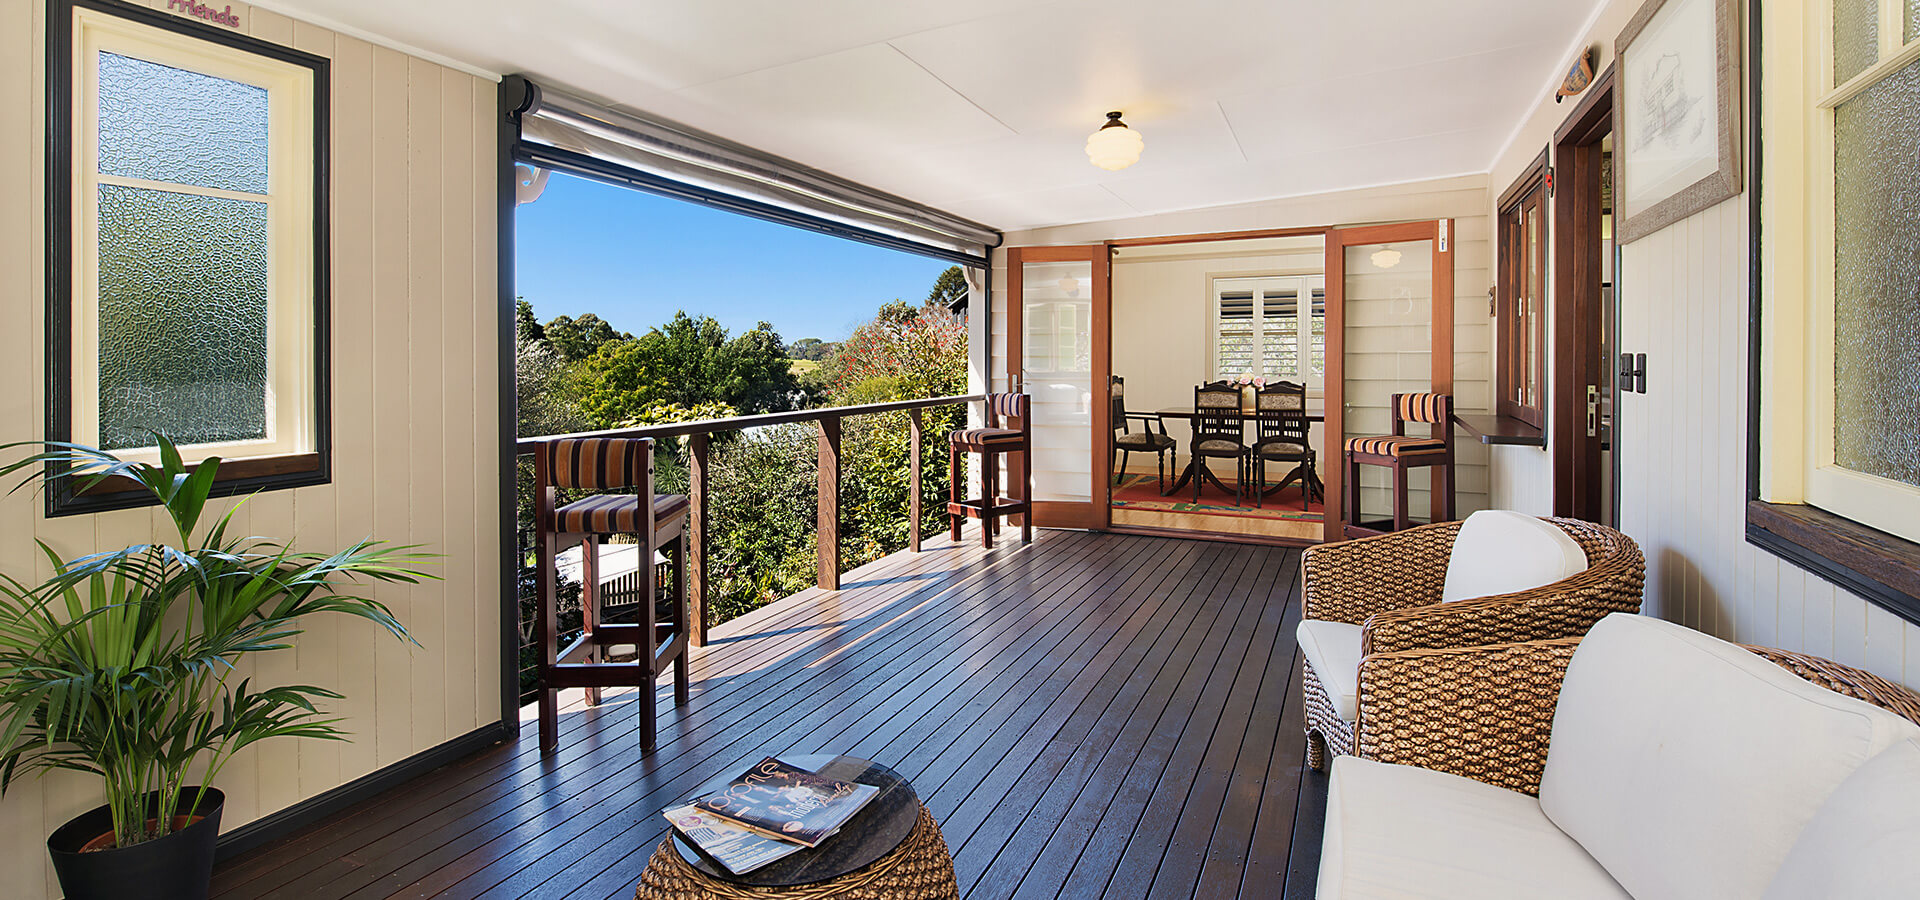 The Residence - Self contained residence, sleeps 7, from $450/night